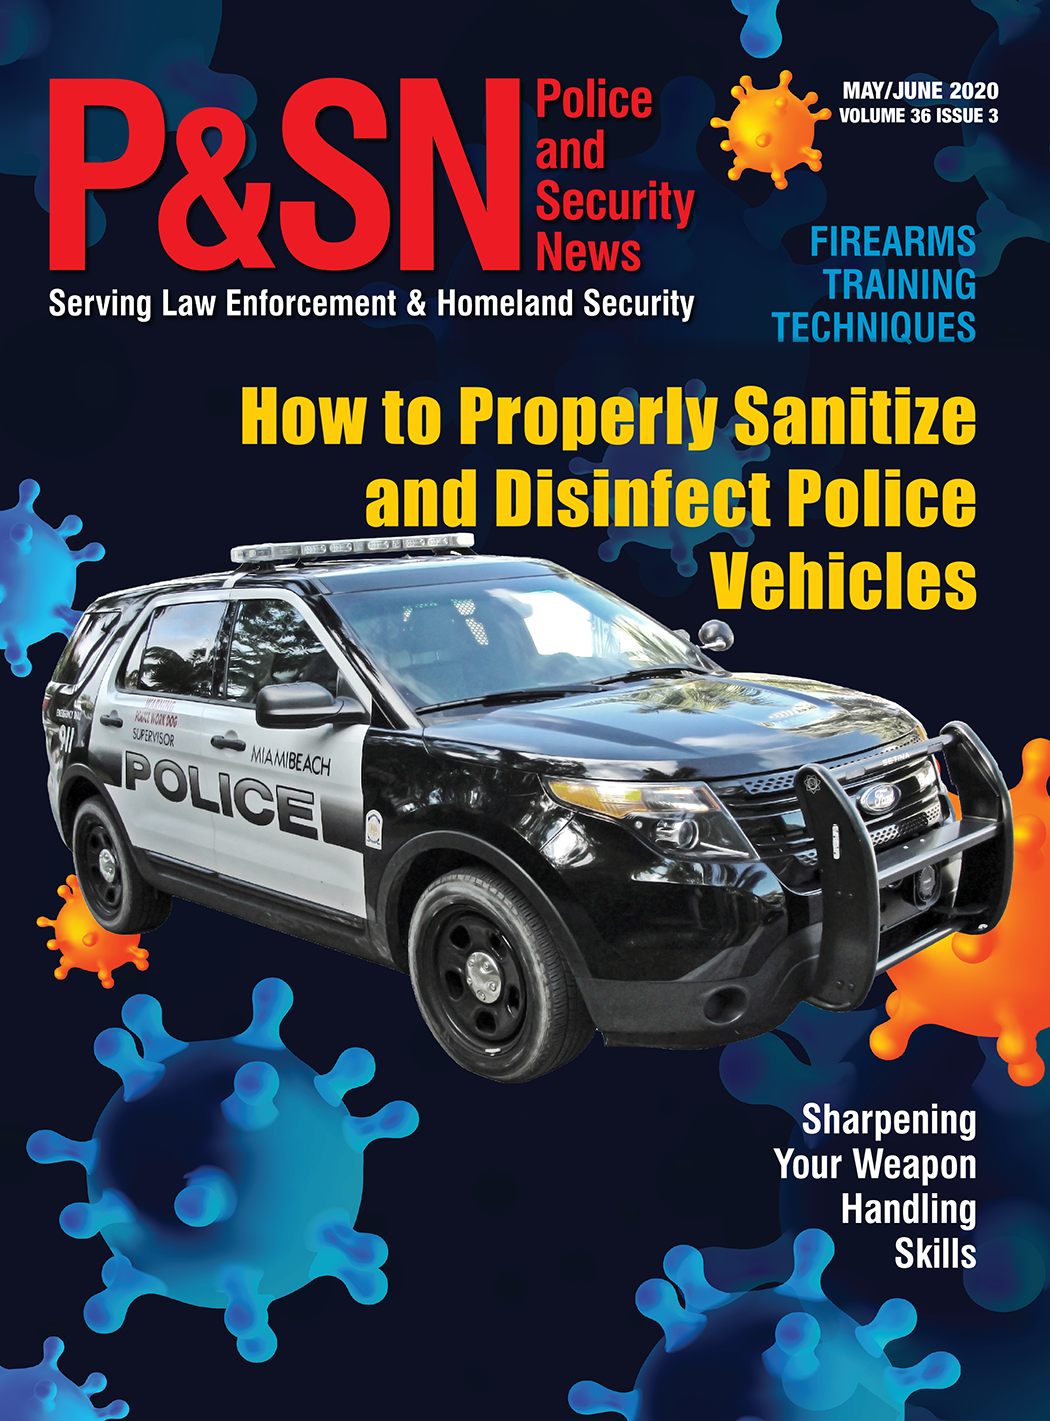 May June Cover of Police and Security News